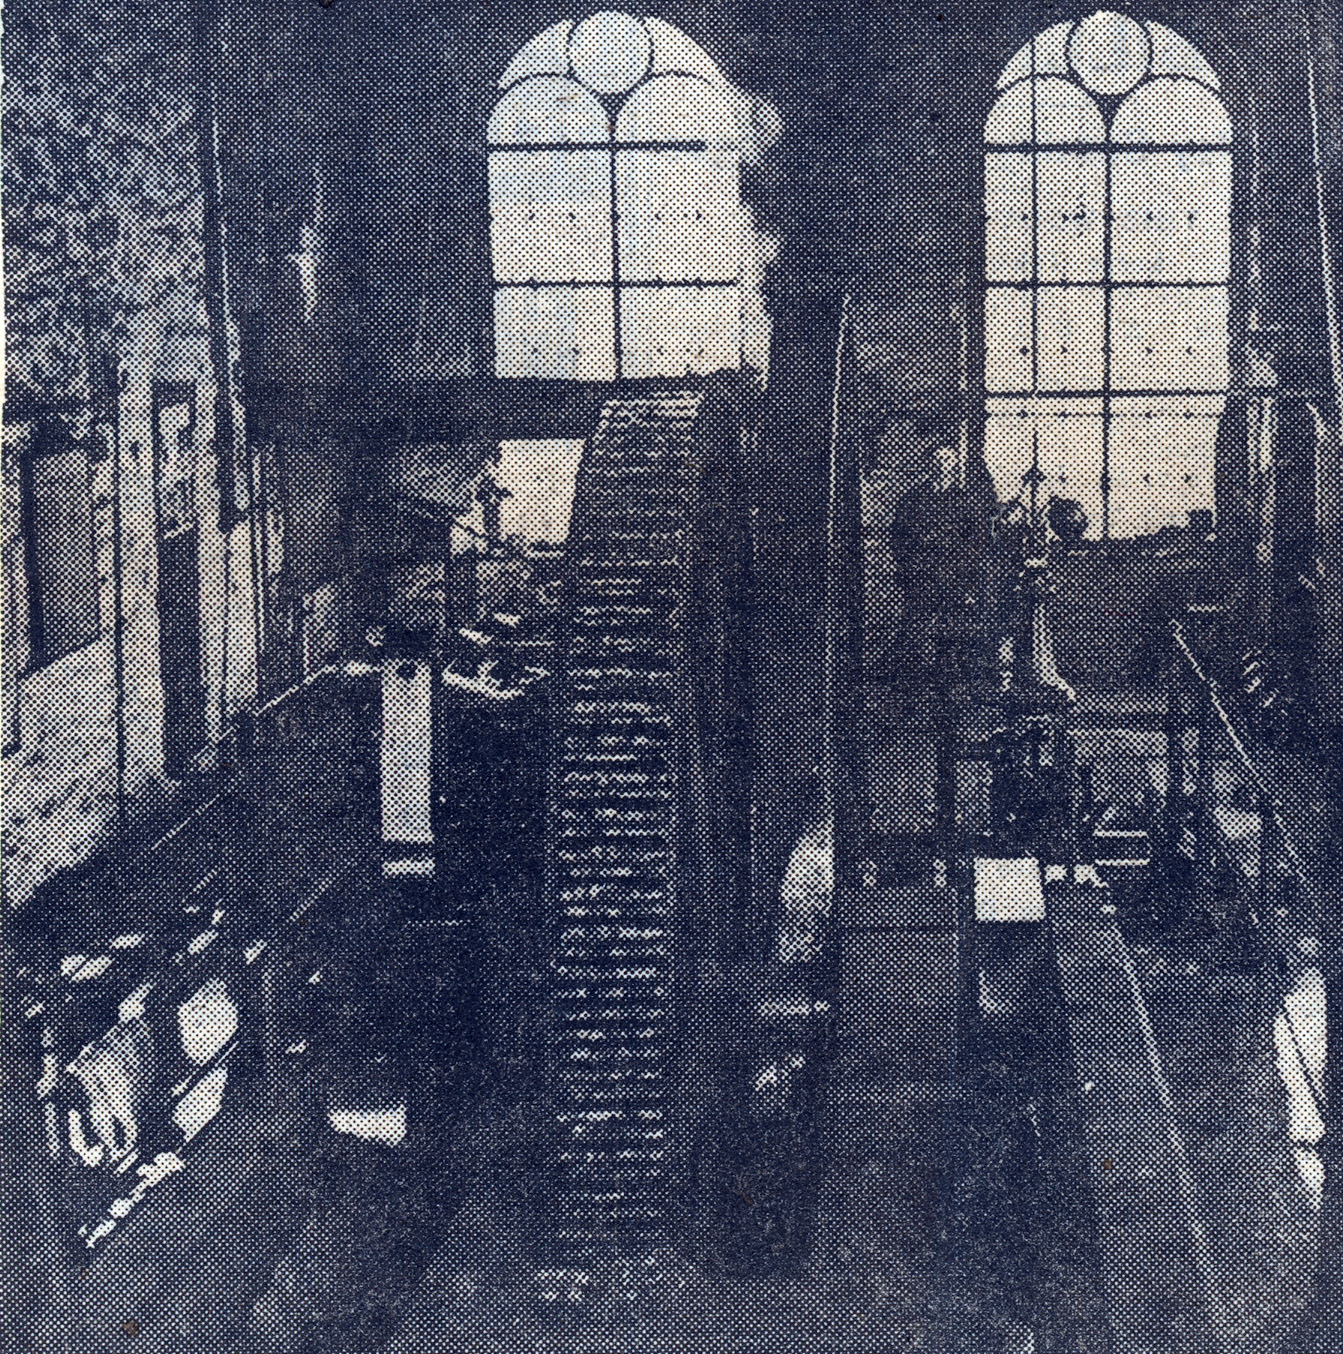 The engine room and the giant flywheel which worked the pumps